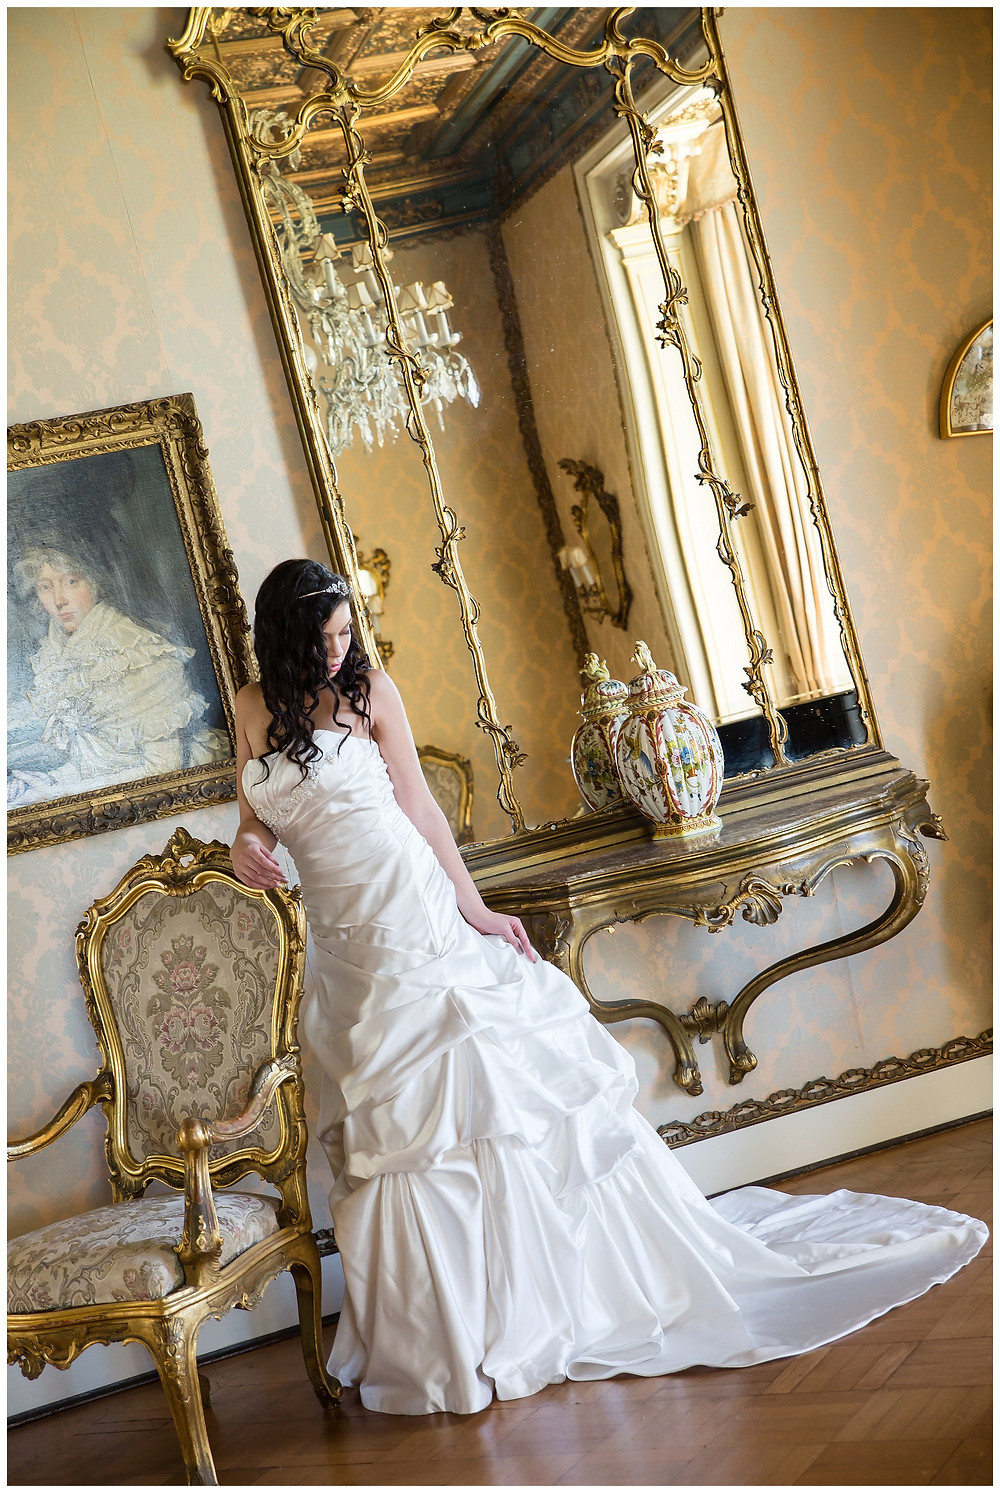 Wedding dress bridal shoot at Casa Labia by jaqui Franco Photography